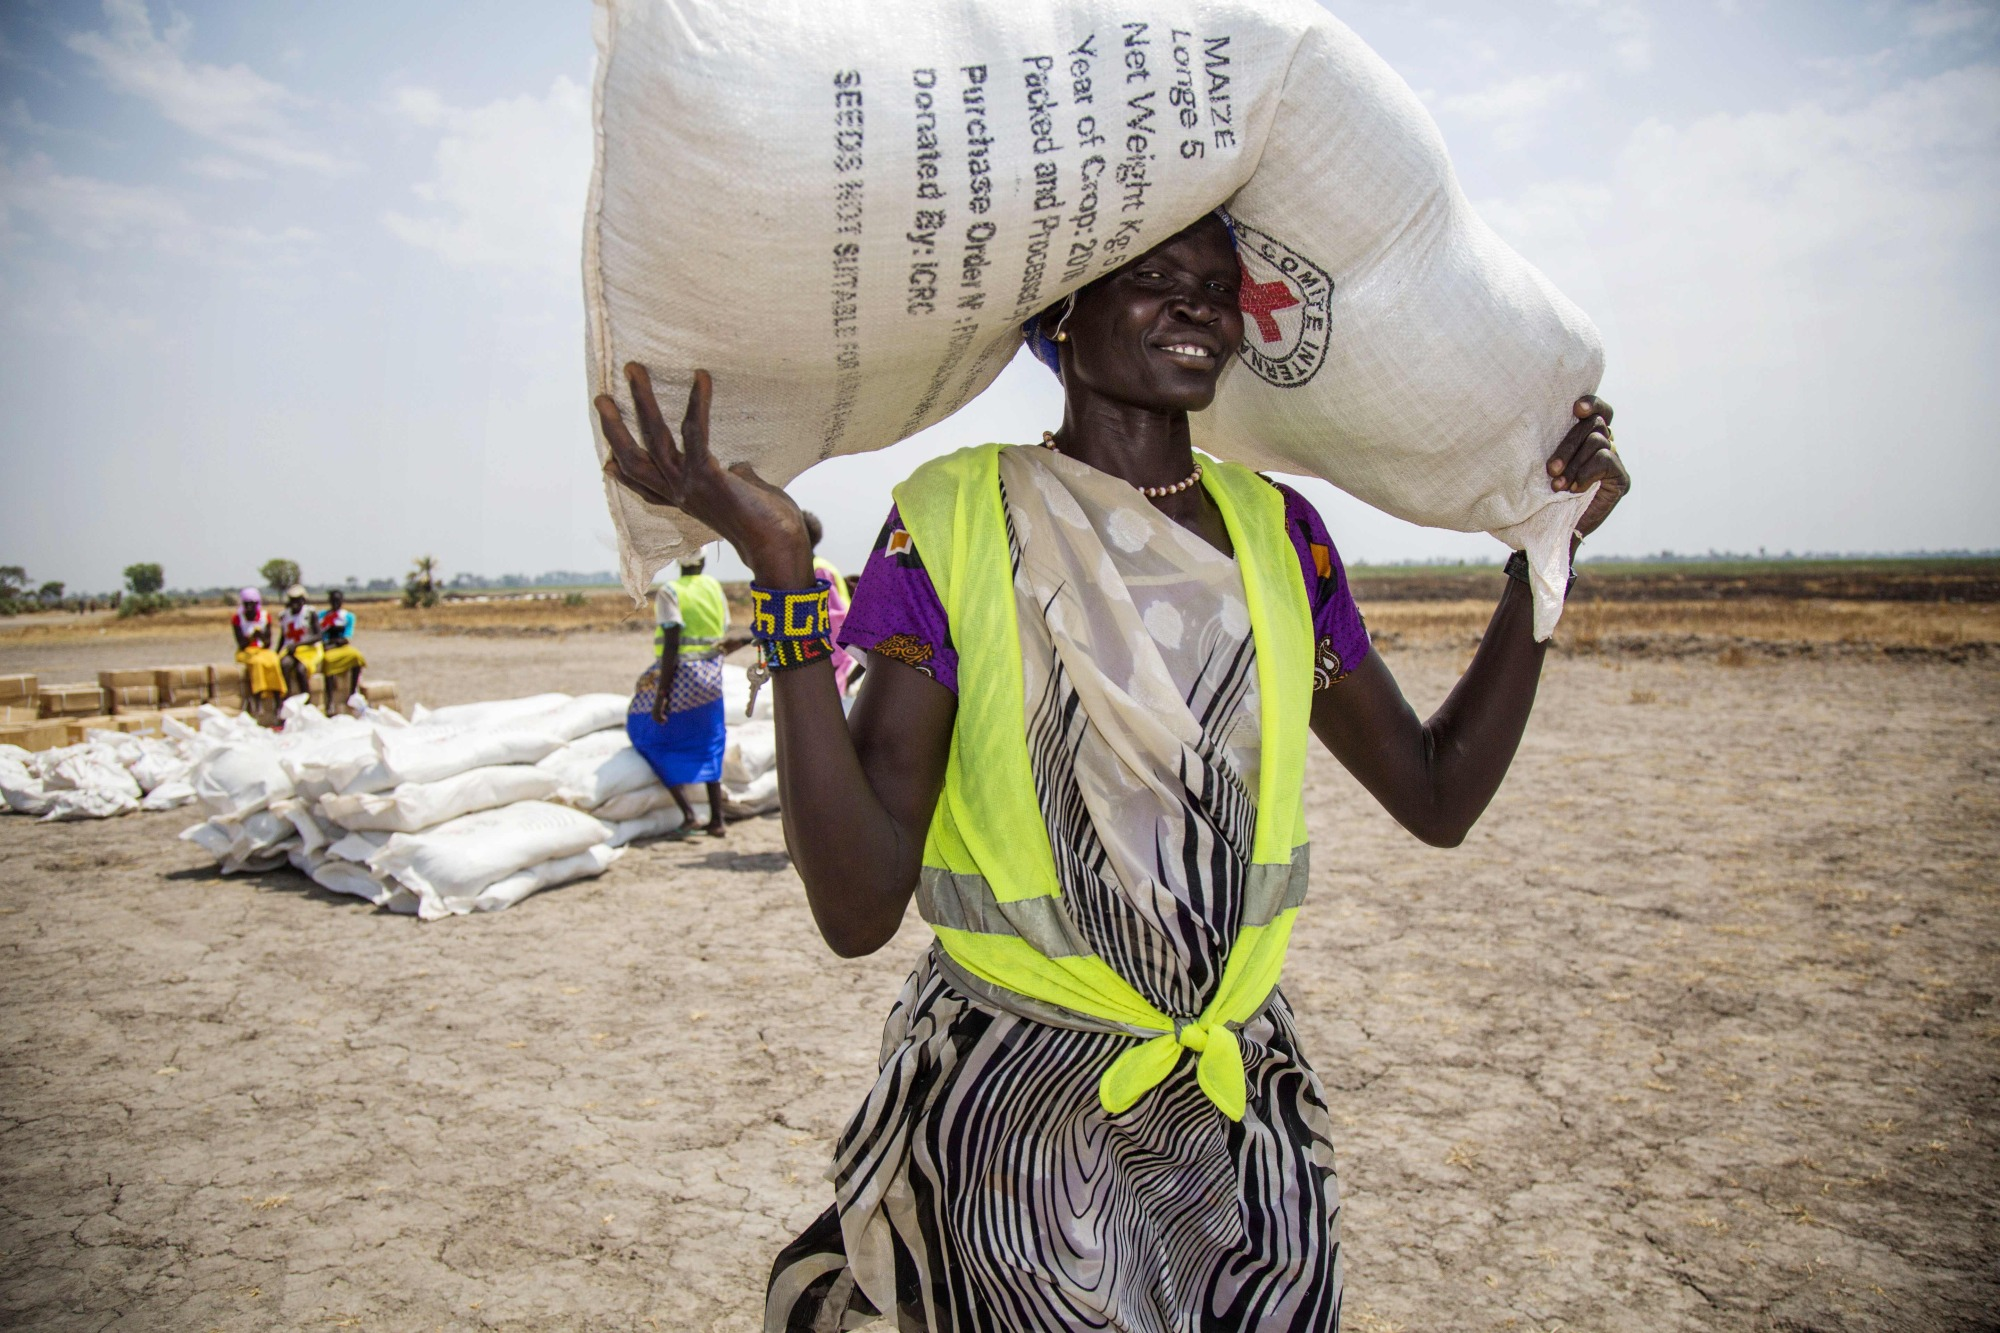 A local community volunteer carries a sack of seeds distributed by the International Committee of the Red Cross (ICRC) in the opposition-controlled town of Thonyor, in Leer county, South Sudan, last April. The wave of refugees fleeing crop failures, droughts and rising sea levels will grow drastically over the next three decades if world governments do not intervene, the World Bank warned Monday. By 2050, 143 million 'climate migrants' will face an 'existential threat' and be displaced, the World Bank said in a new report.   AFP-JIJI